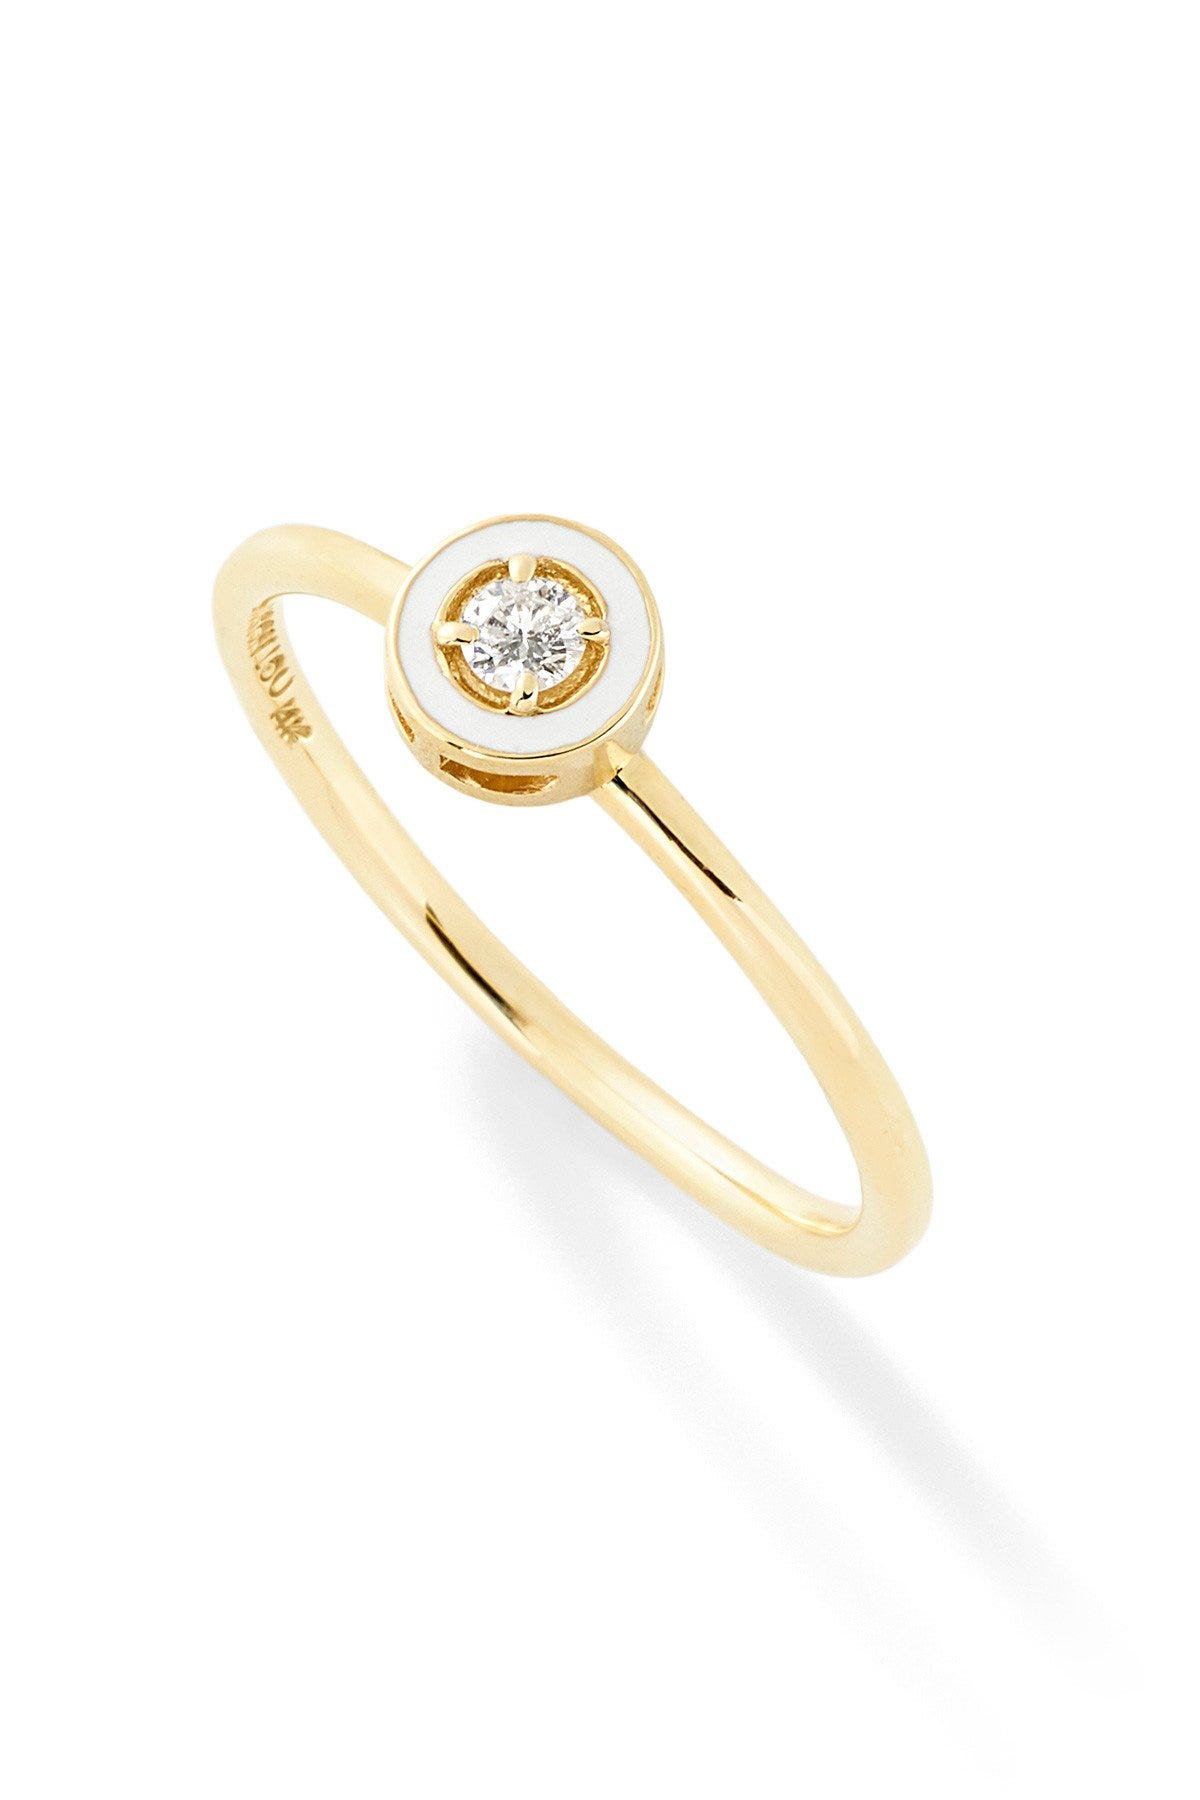 weddingring rings modern pin white oro and simple yellow ring rose in wedding vow engagement solitaire available vrai diamond gold